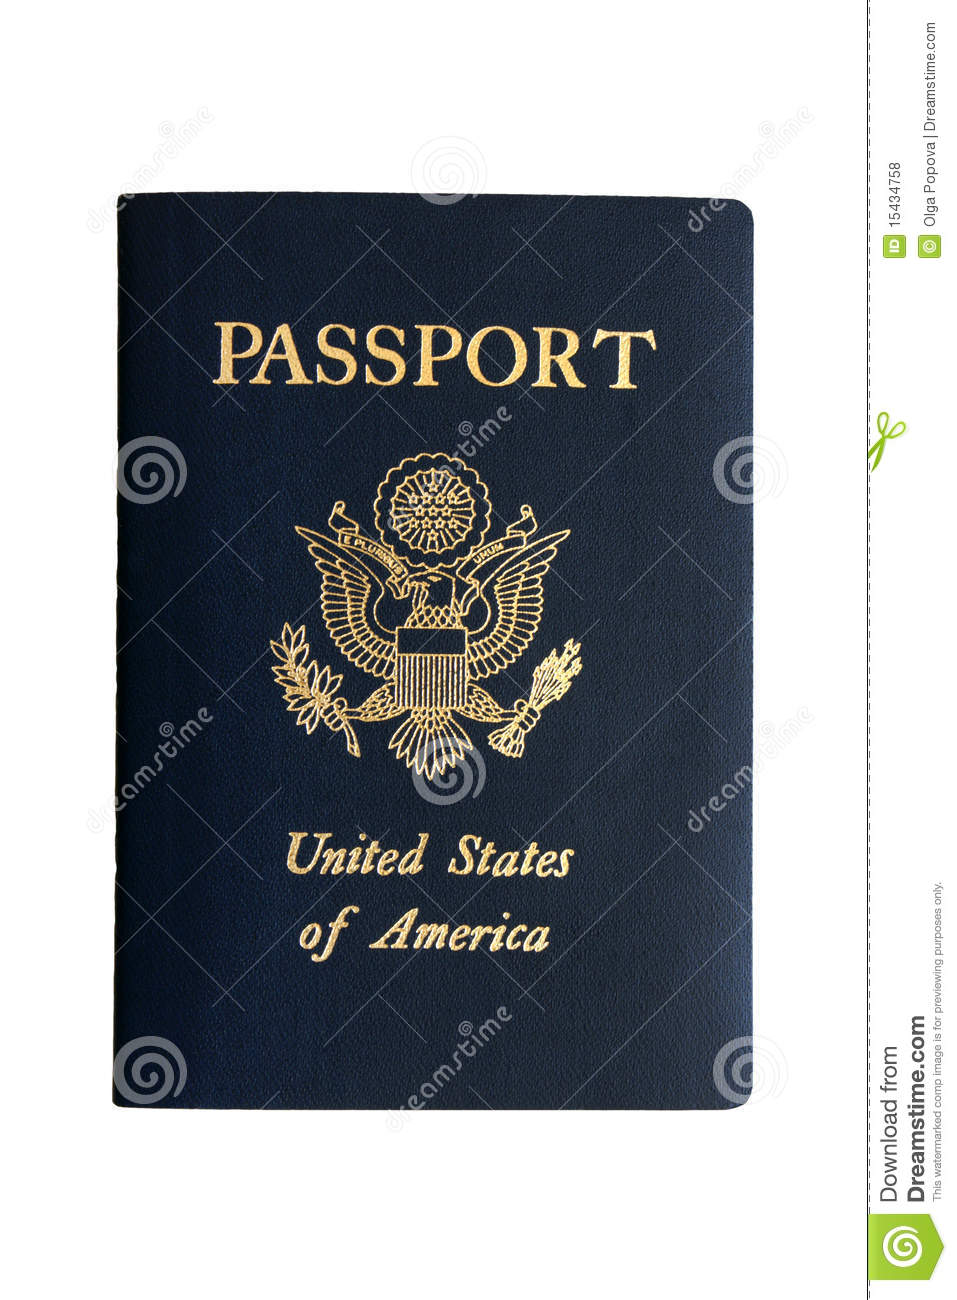 American Passport Royalty Free Stock Photos - Image: 15434758